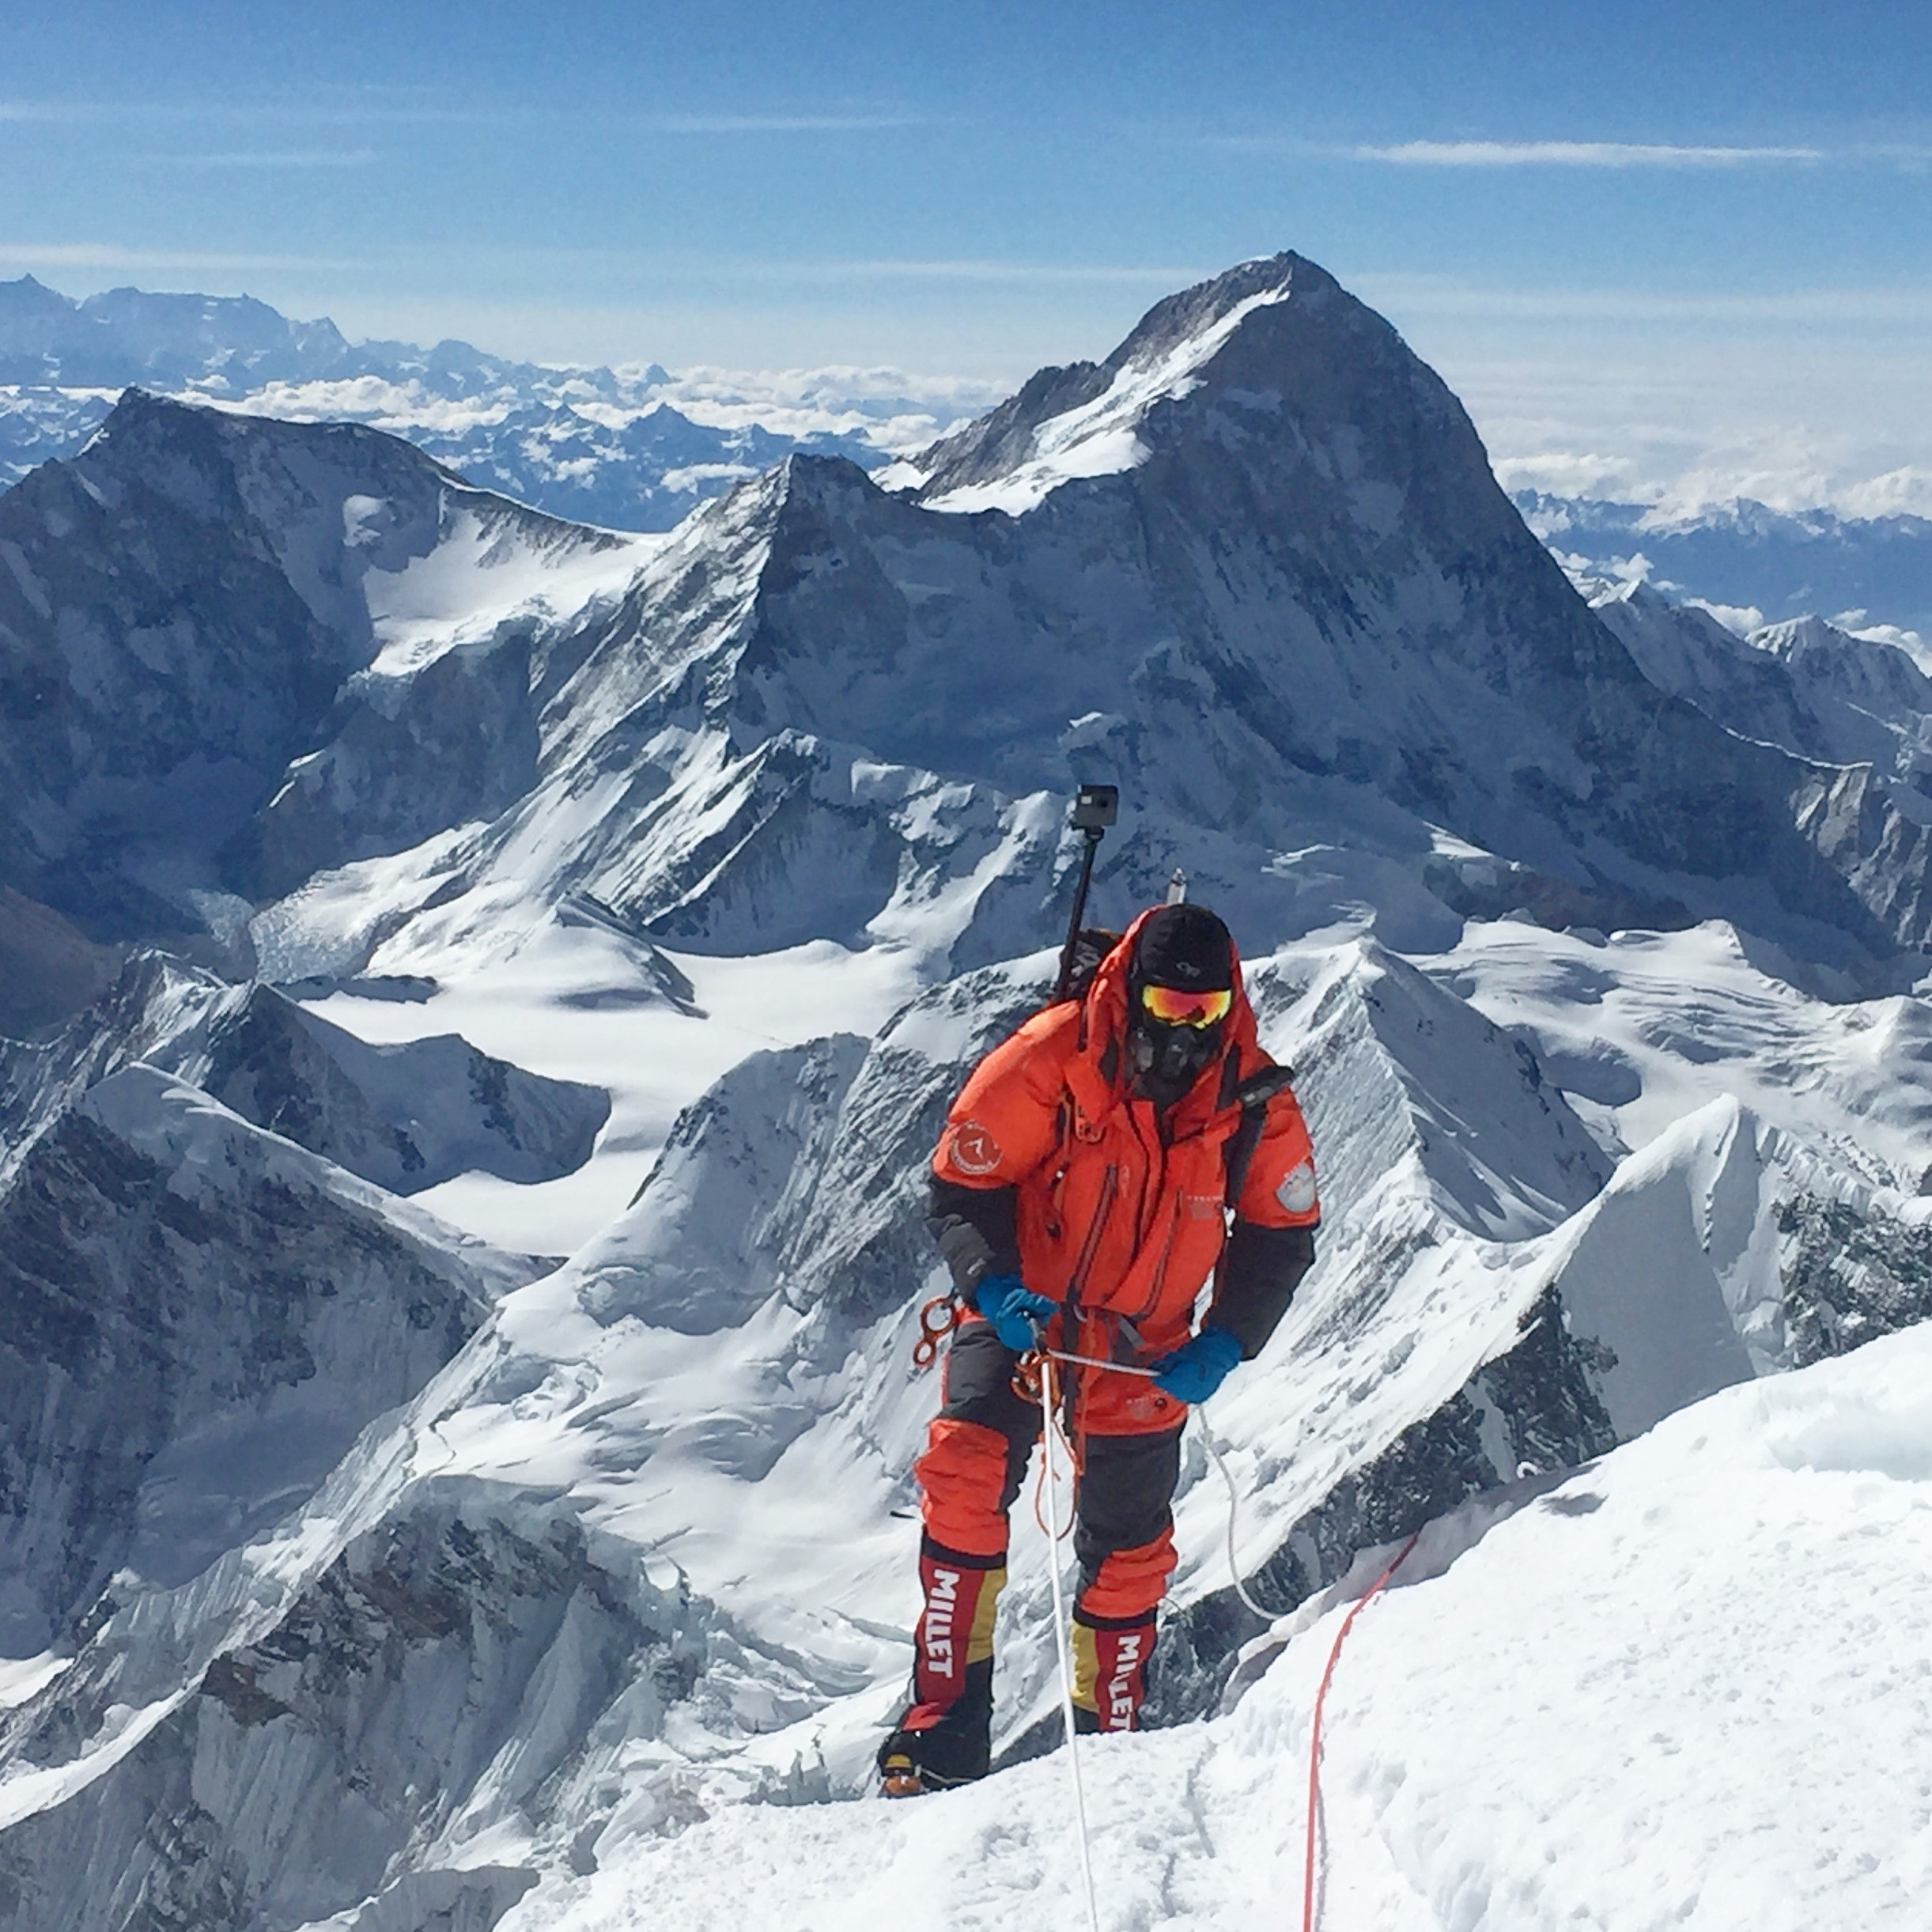 Everest: A Guide's Perspective